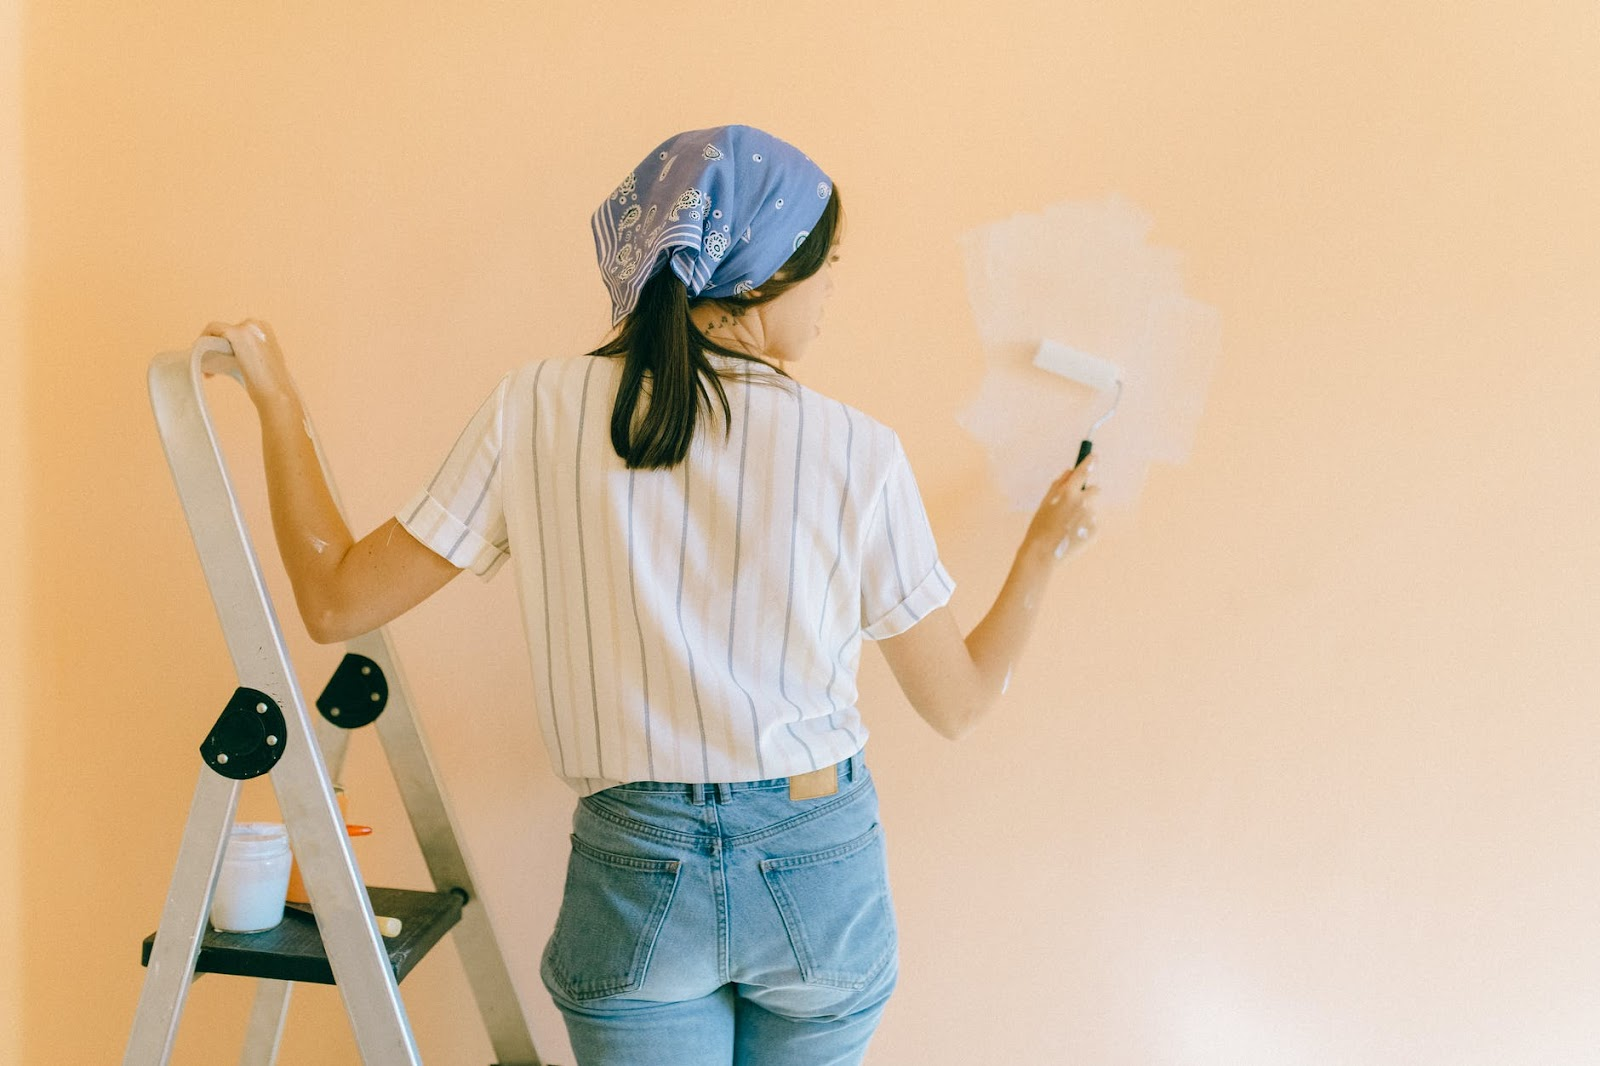 5 - PAINT COLOR EXPOSES OR CONCEALS.